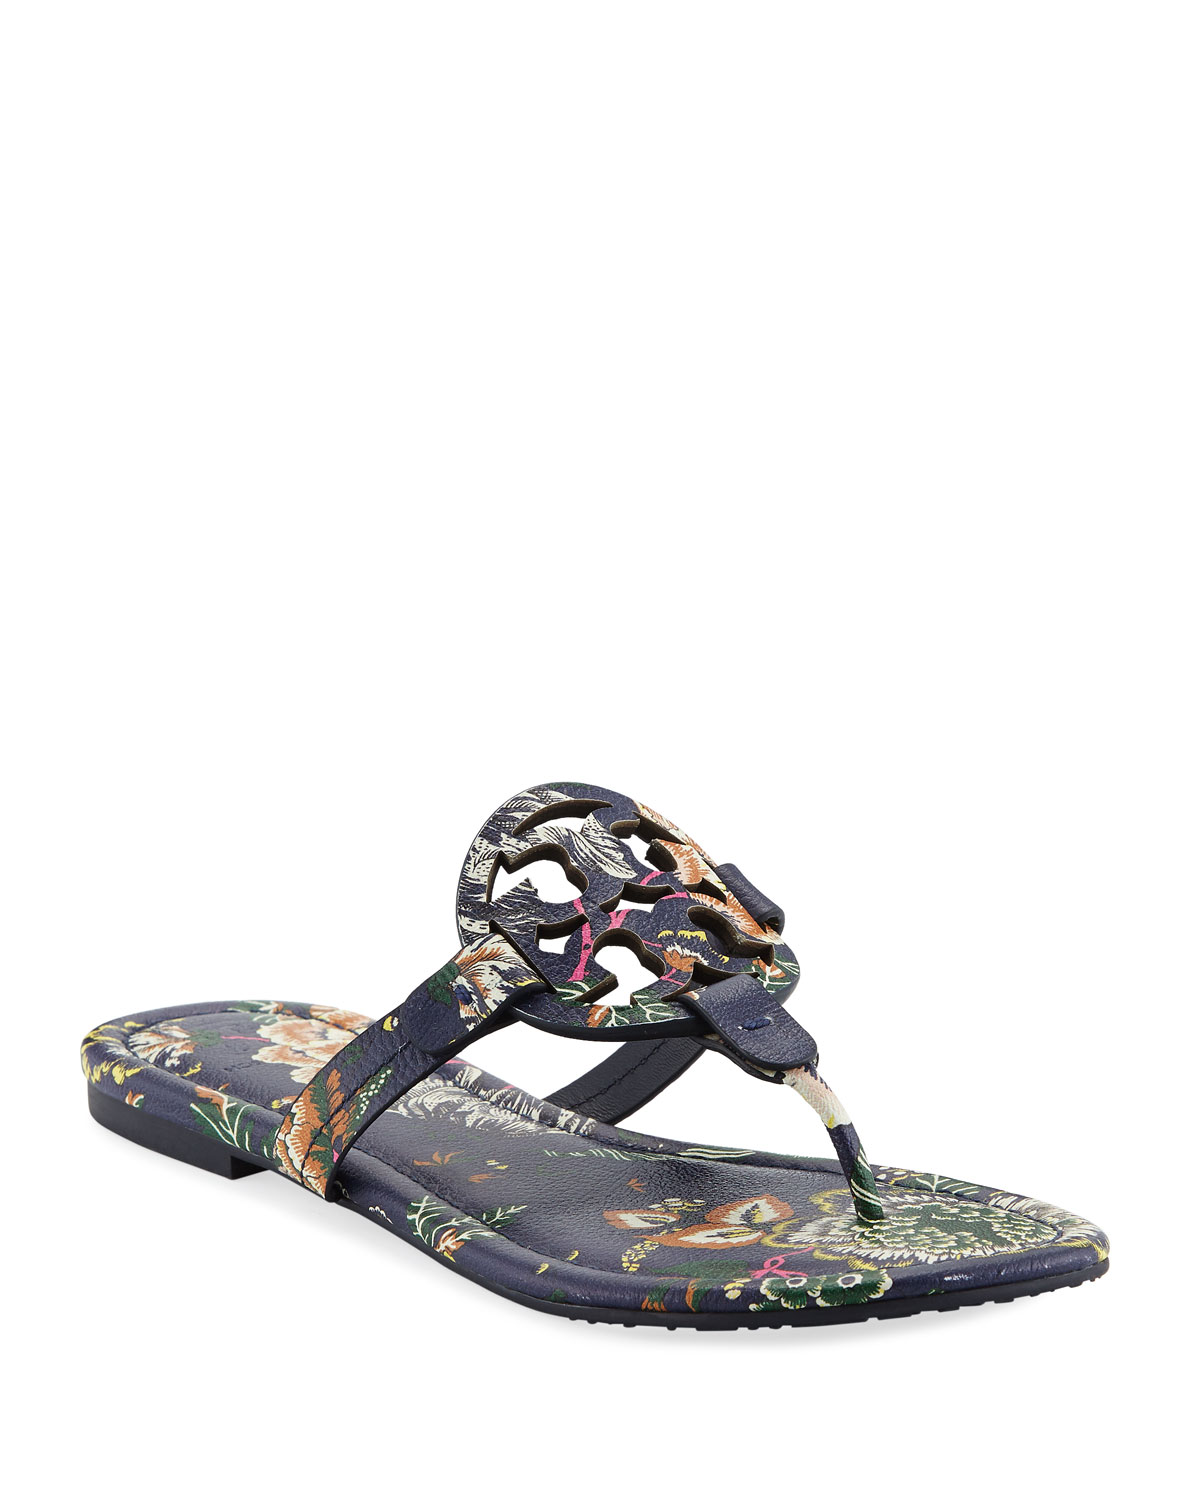 5906cecd4 Tory Burch Miller Medallion Floral-Print Leather Flat Thong Sandals ...